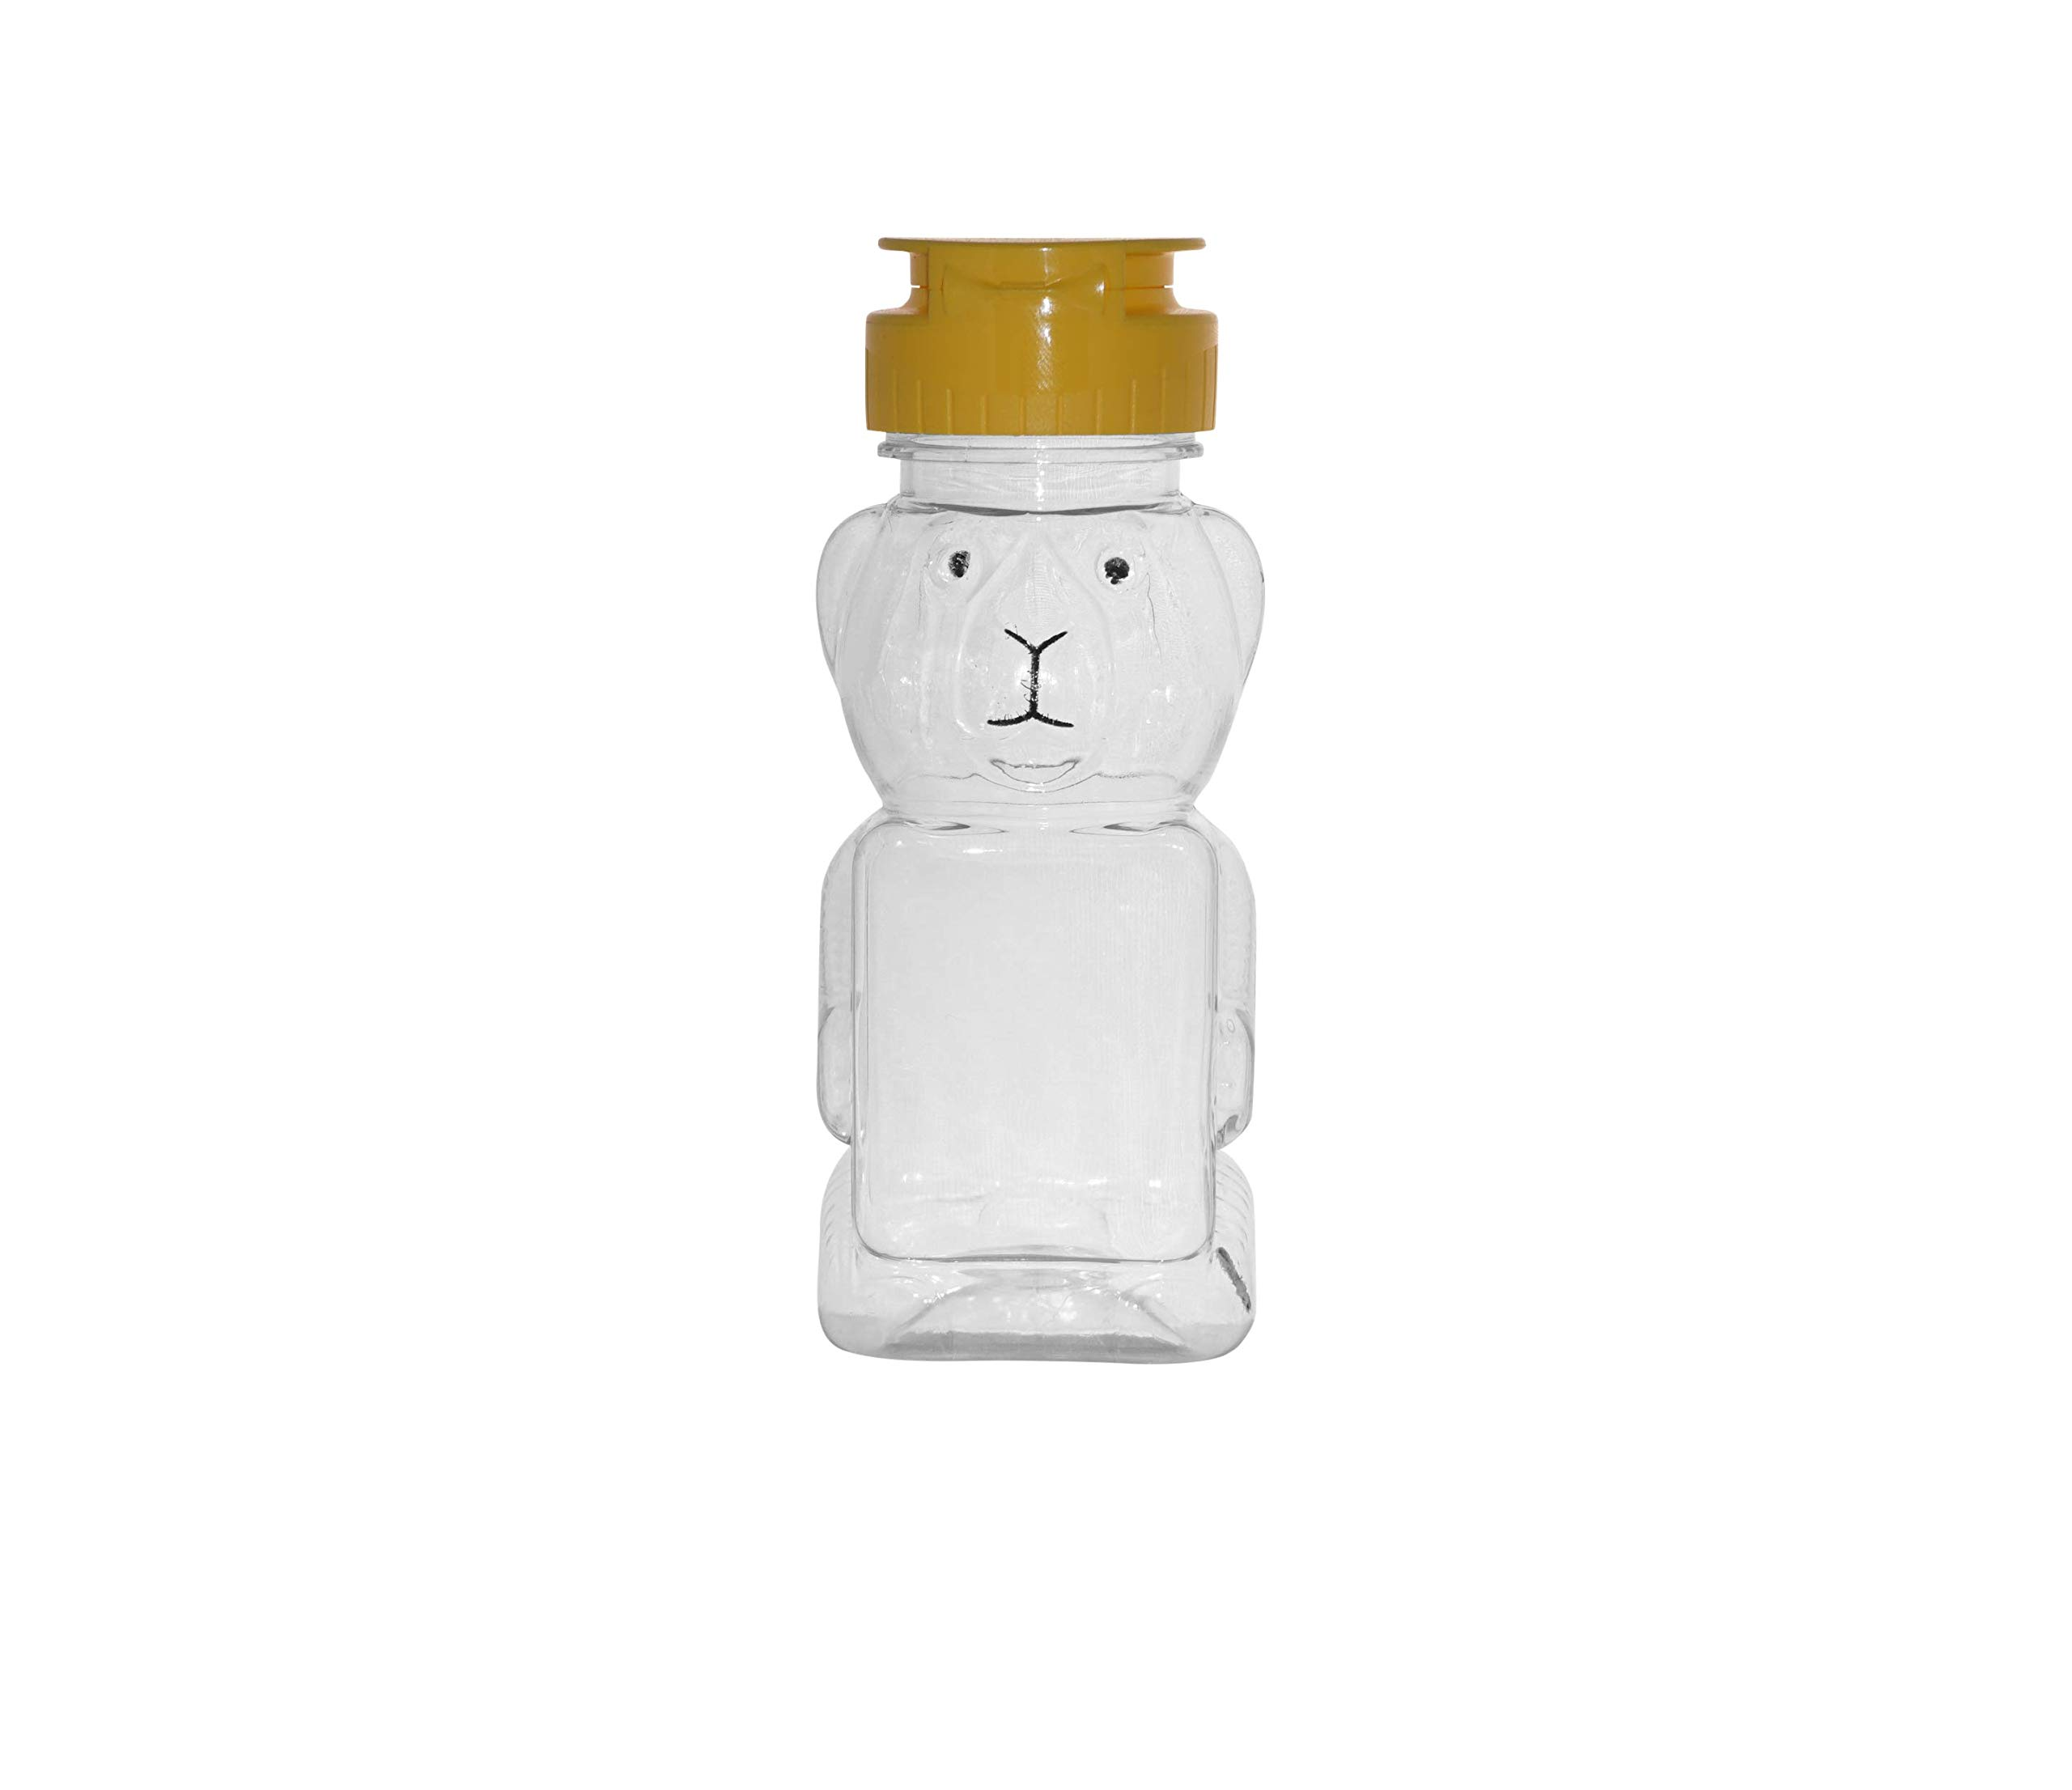 WM (Set of 216) 8 fl oz of honey (12 oz) Refillable, Reusable, Empty Clear PET Honey Bear Plastic Bottles w/ Yellow Lined Flip Top Caps. Used for Honey, Juice, Arts & Crafts and More by wolfmoon botanicals (Image #1)